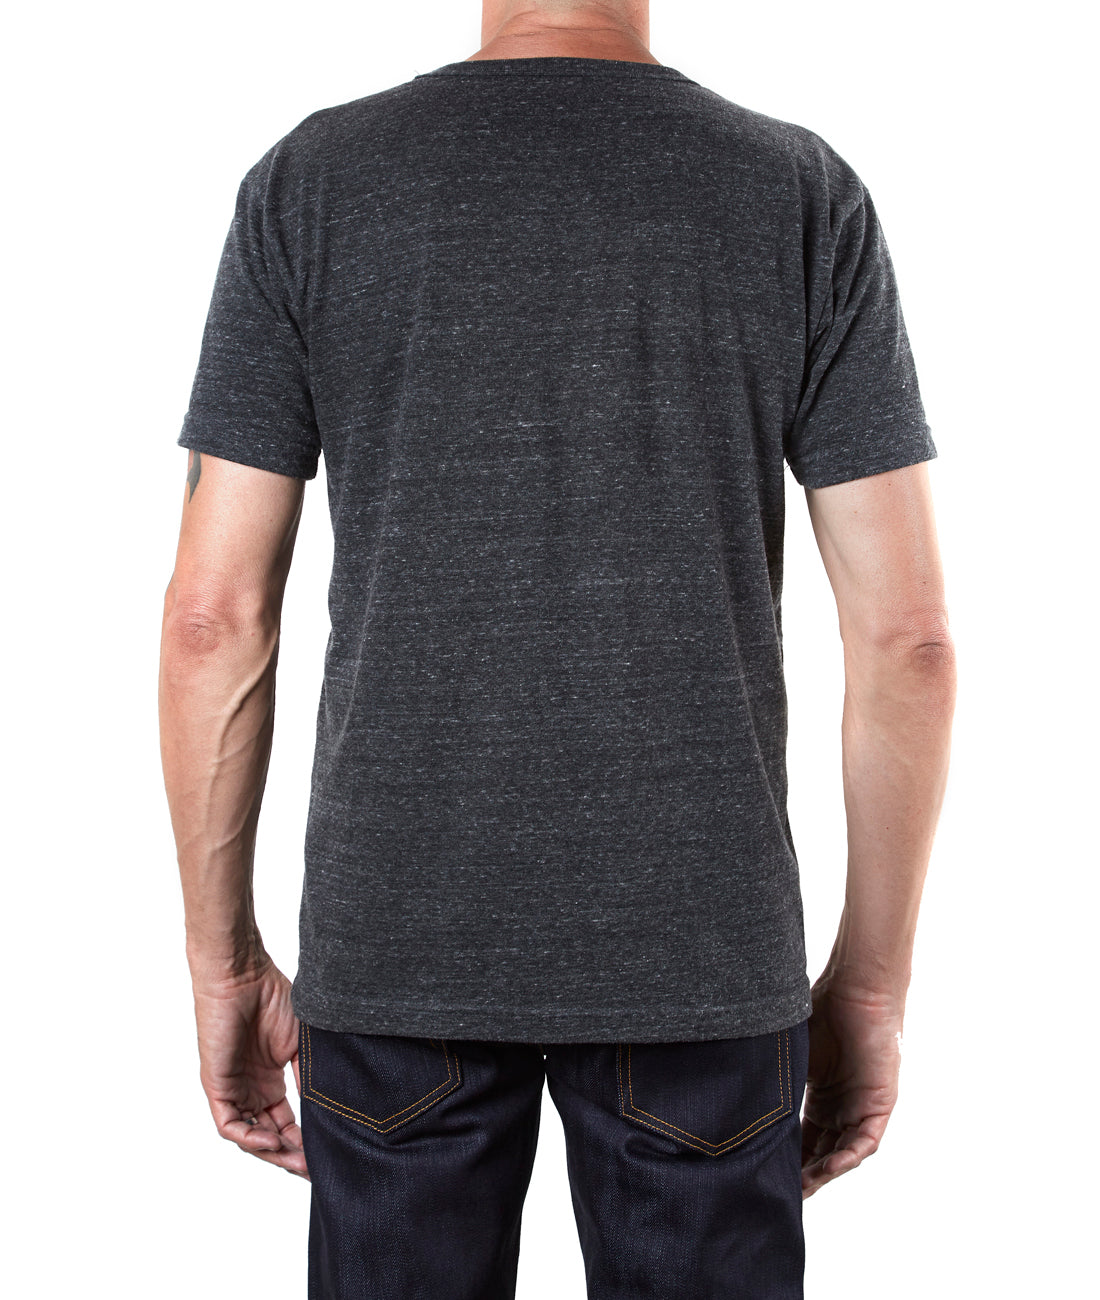 6.5oz Short Sleeve Tri-Blend 2.0 Crew Neck T Shirt